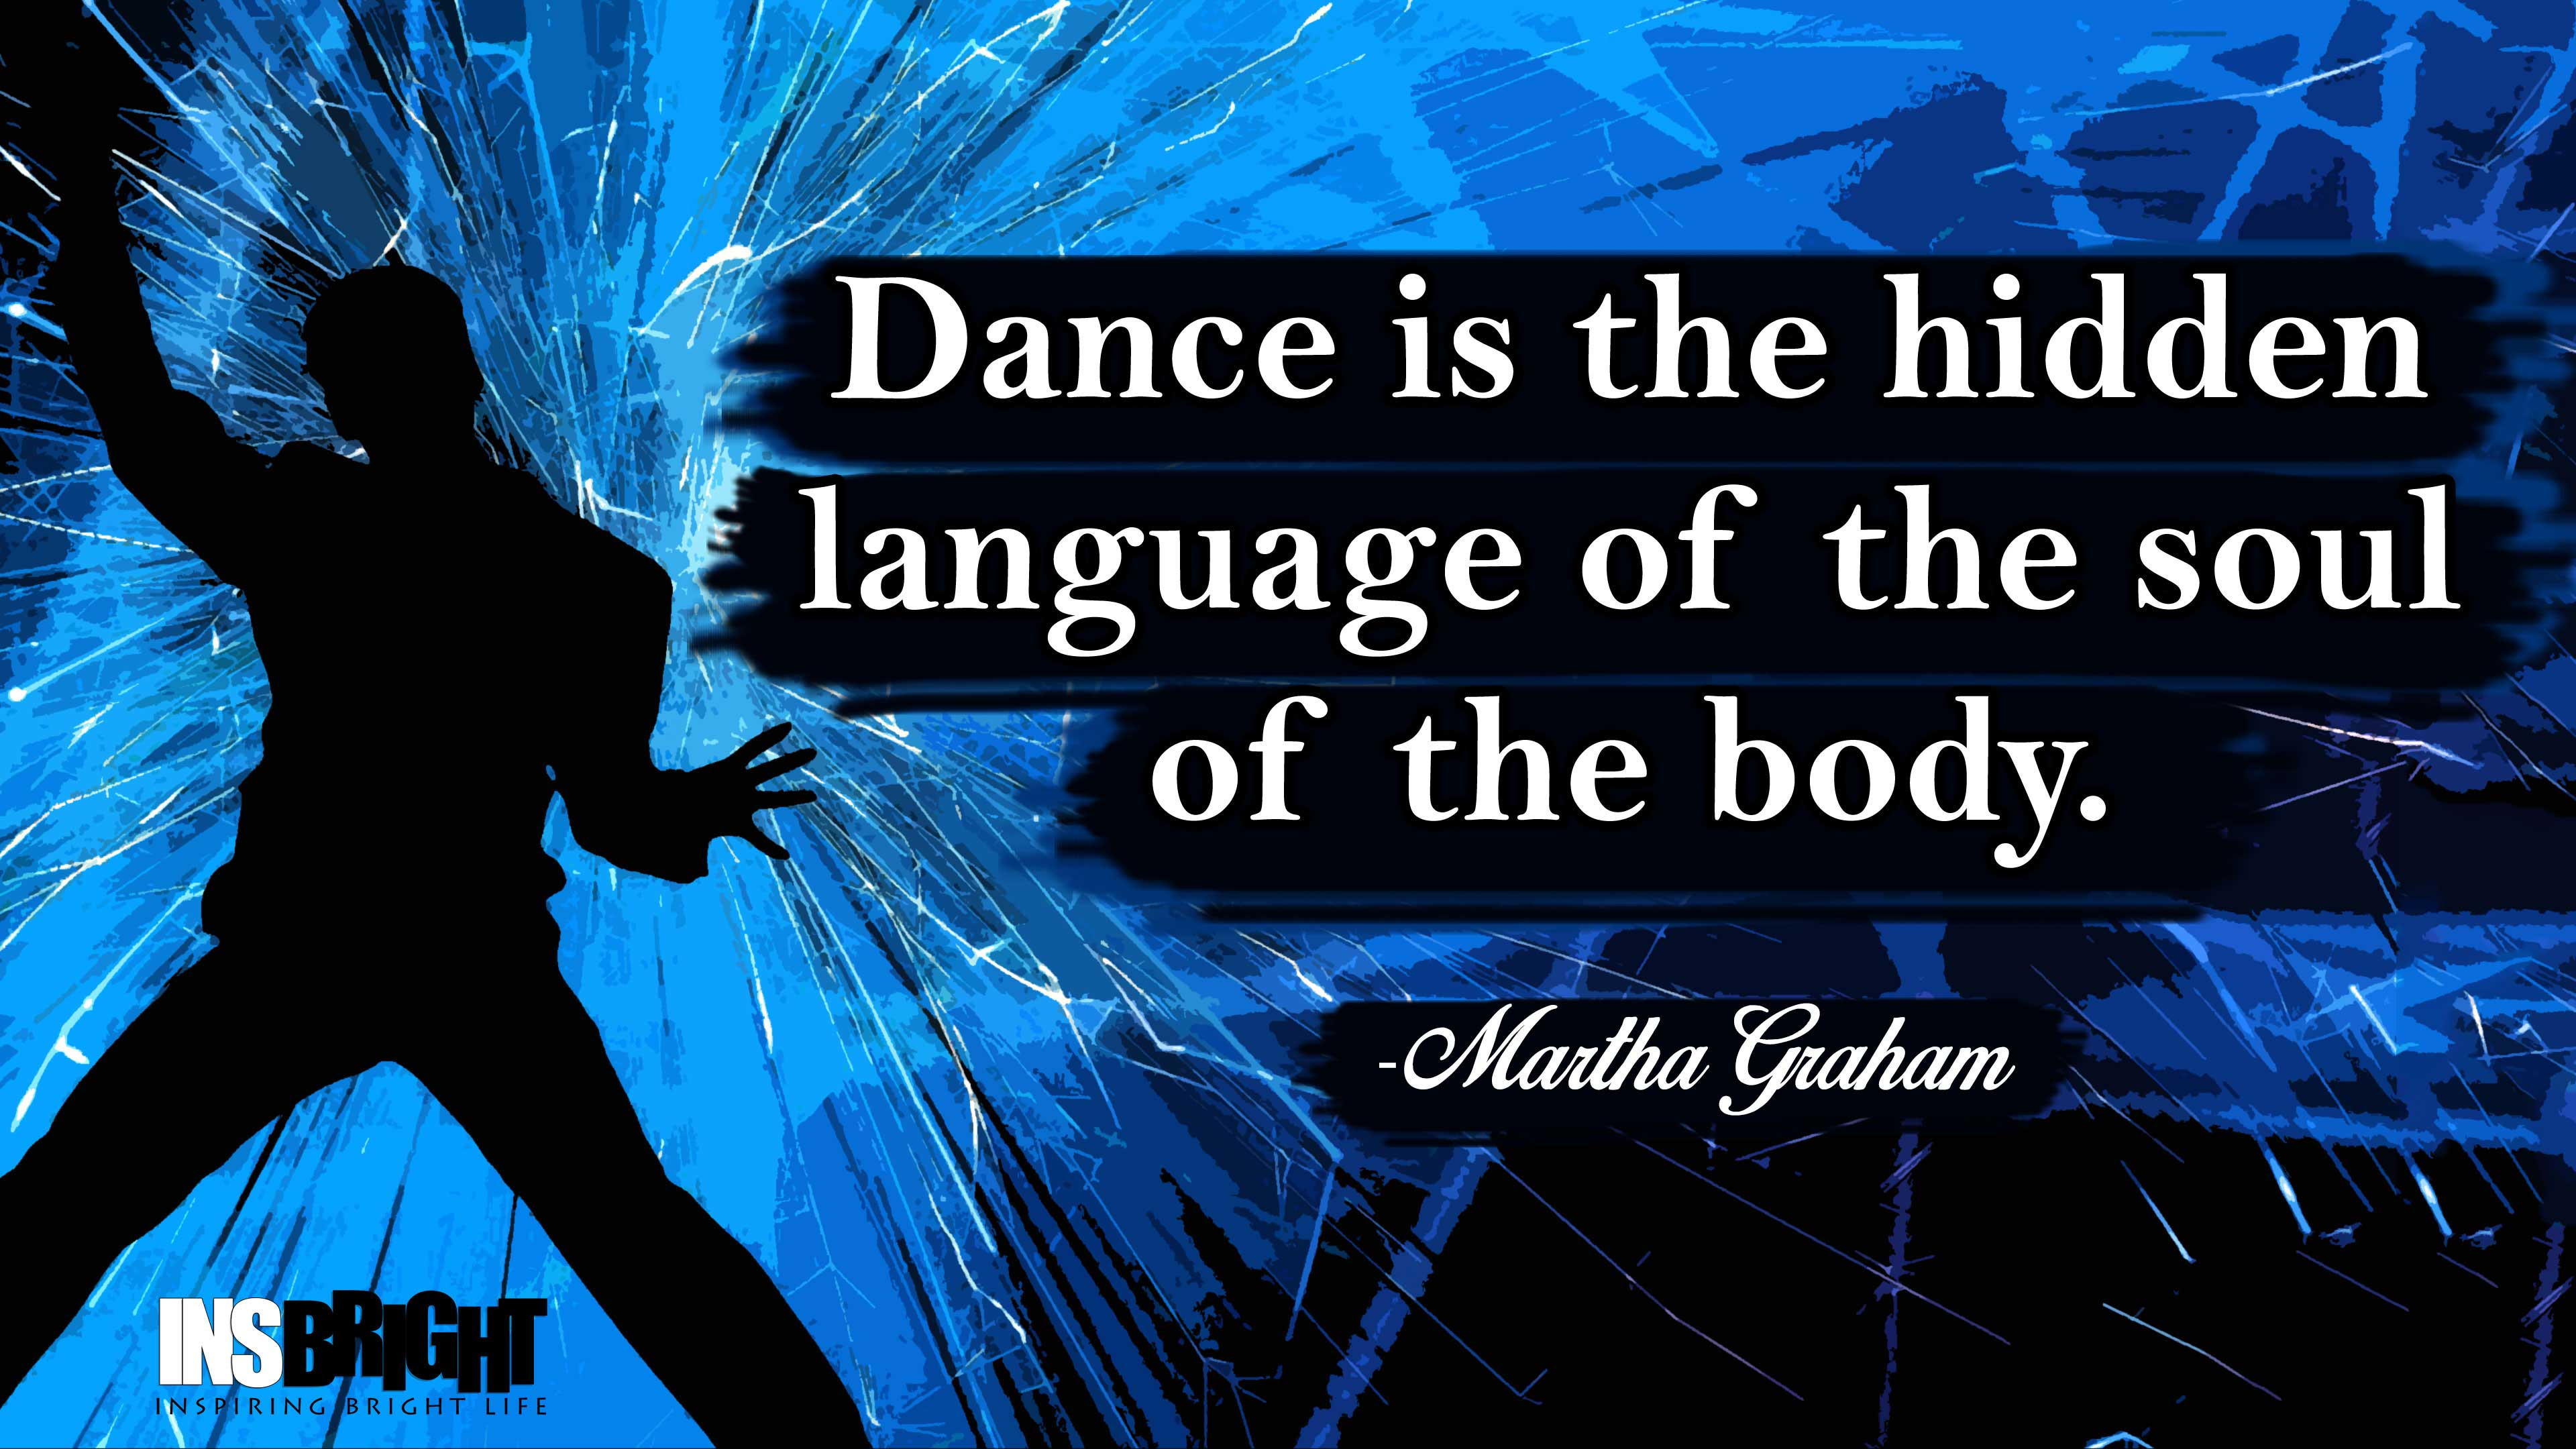 Dance Is Life Quotes 10 Inspirational Dance Quotes Imagesfamous Dancer  Insbright